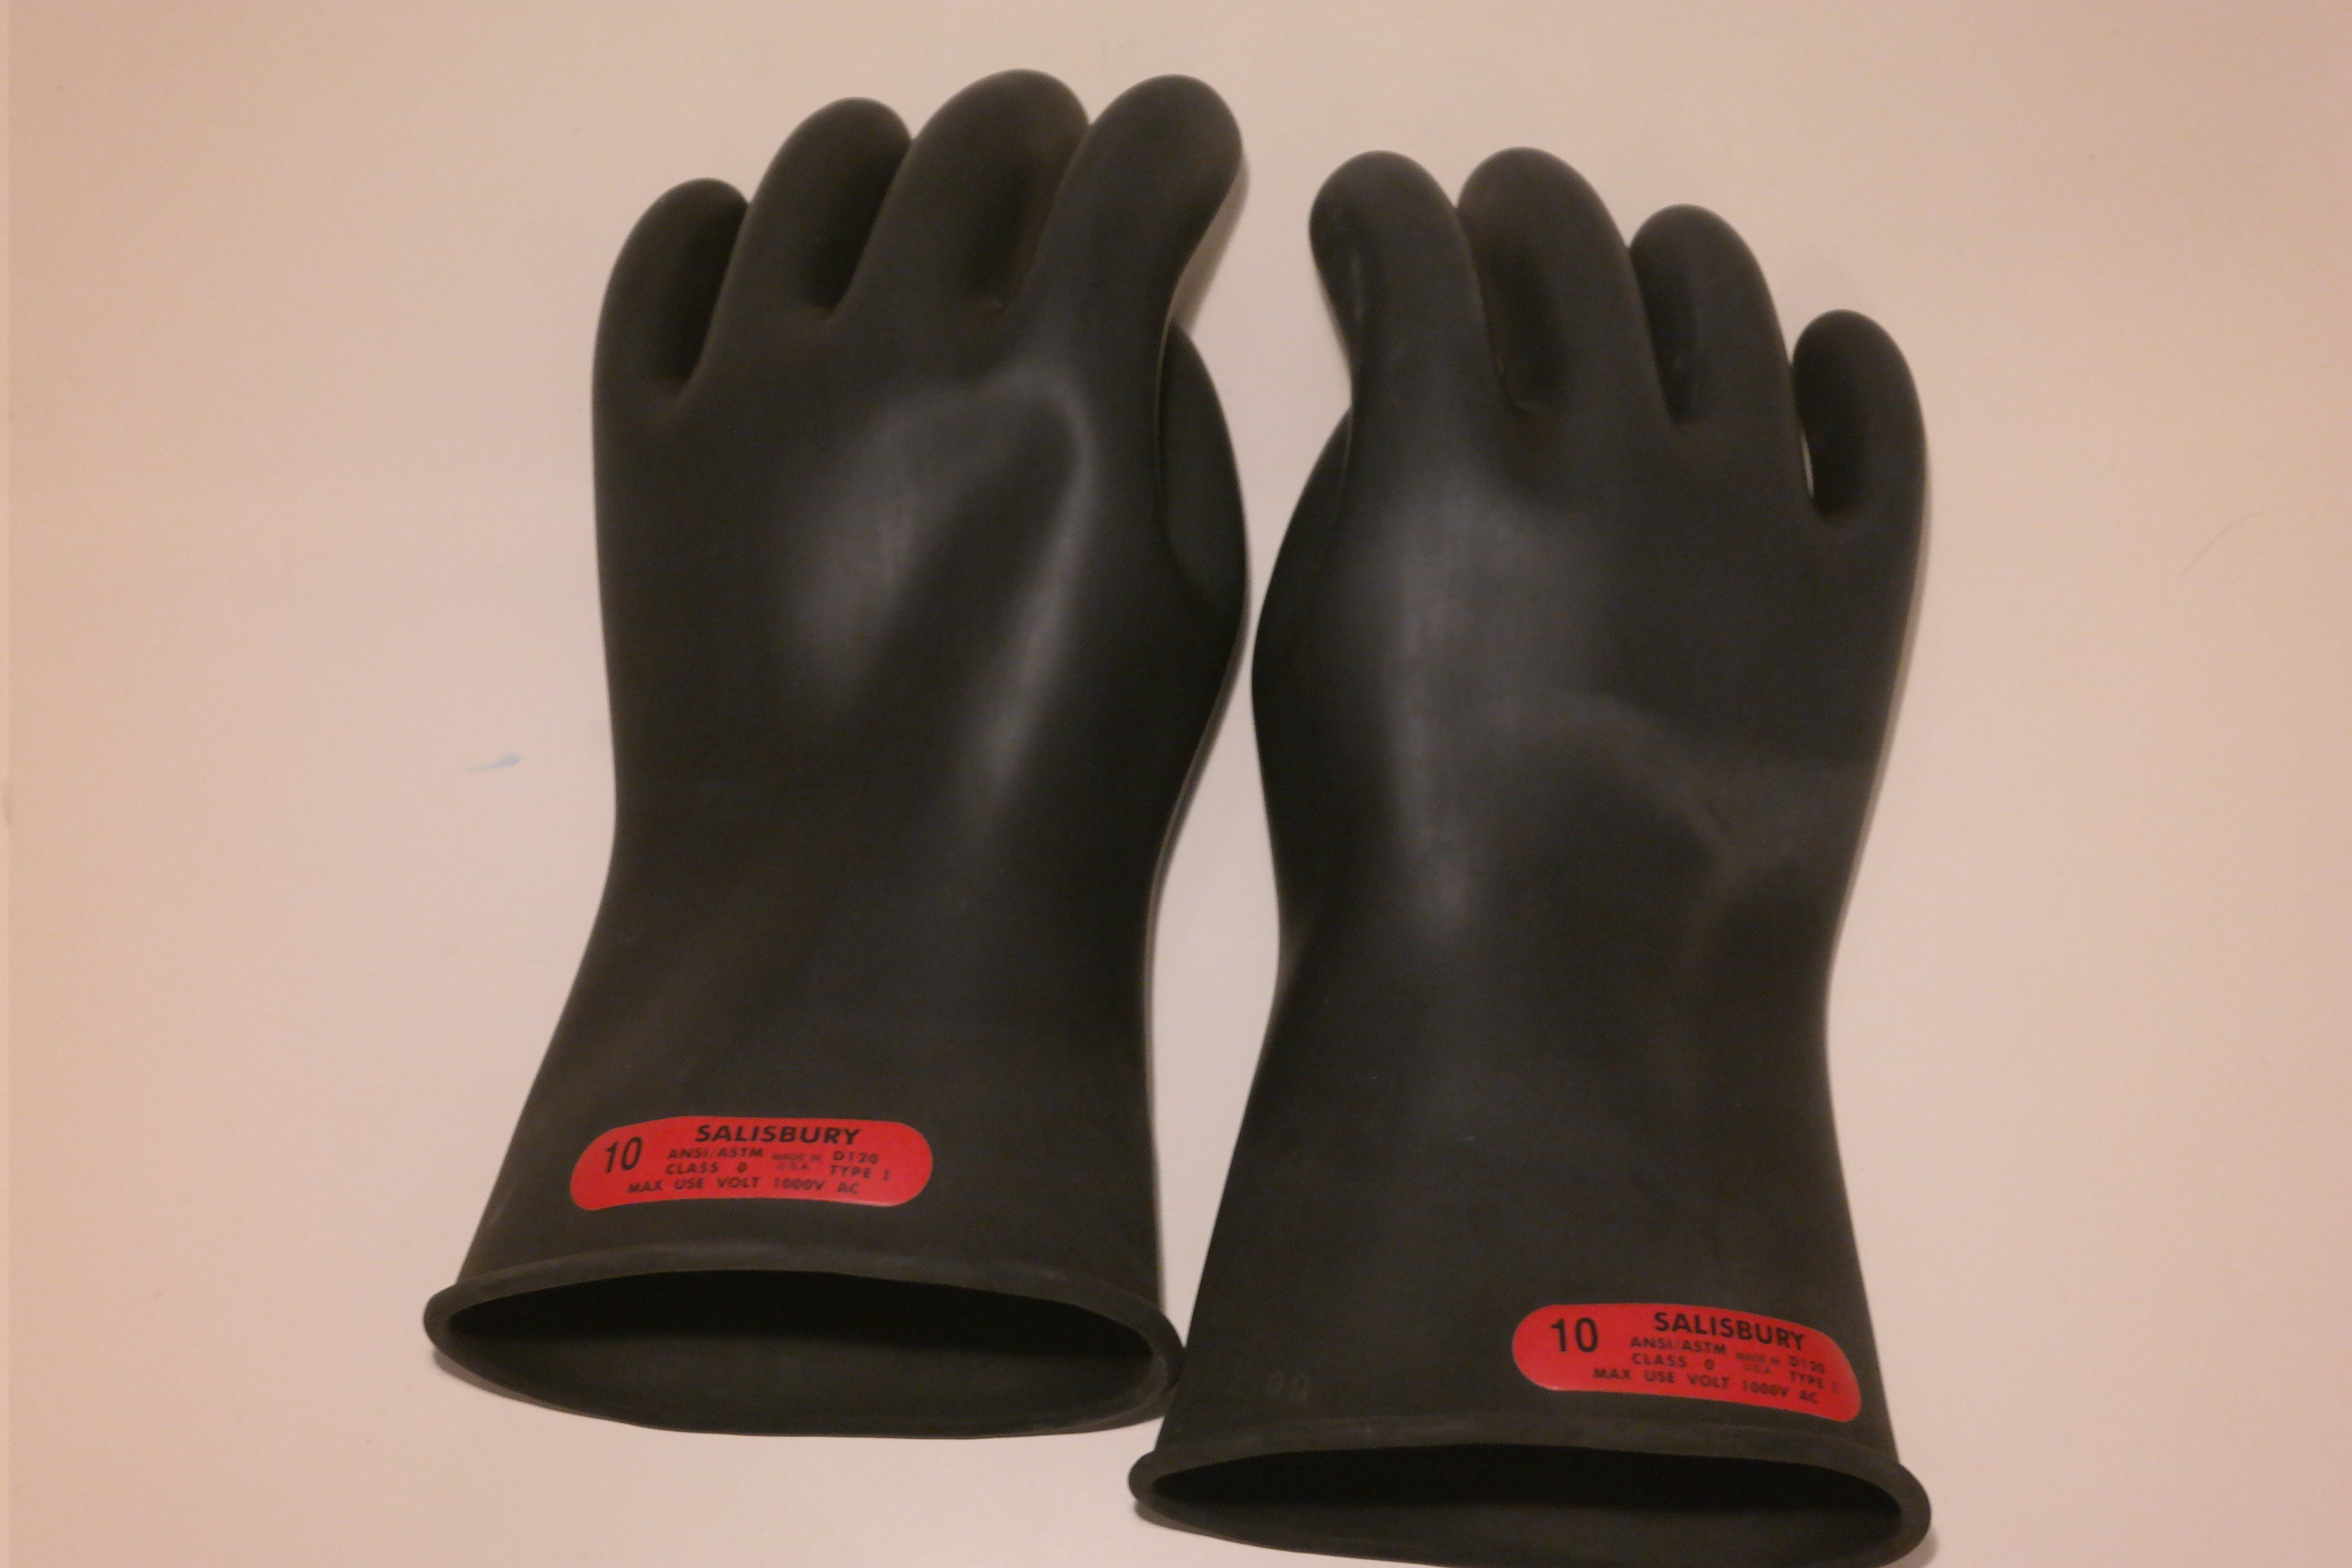 Voltage Rated Gloves : Rozel arc flash studies electrical safety training